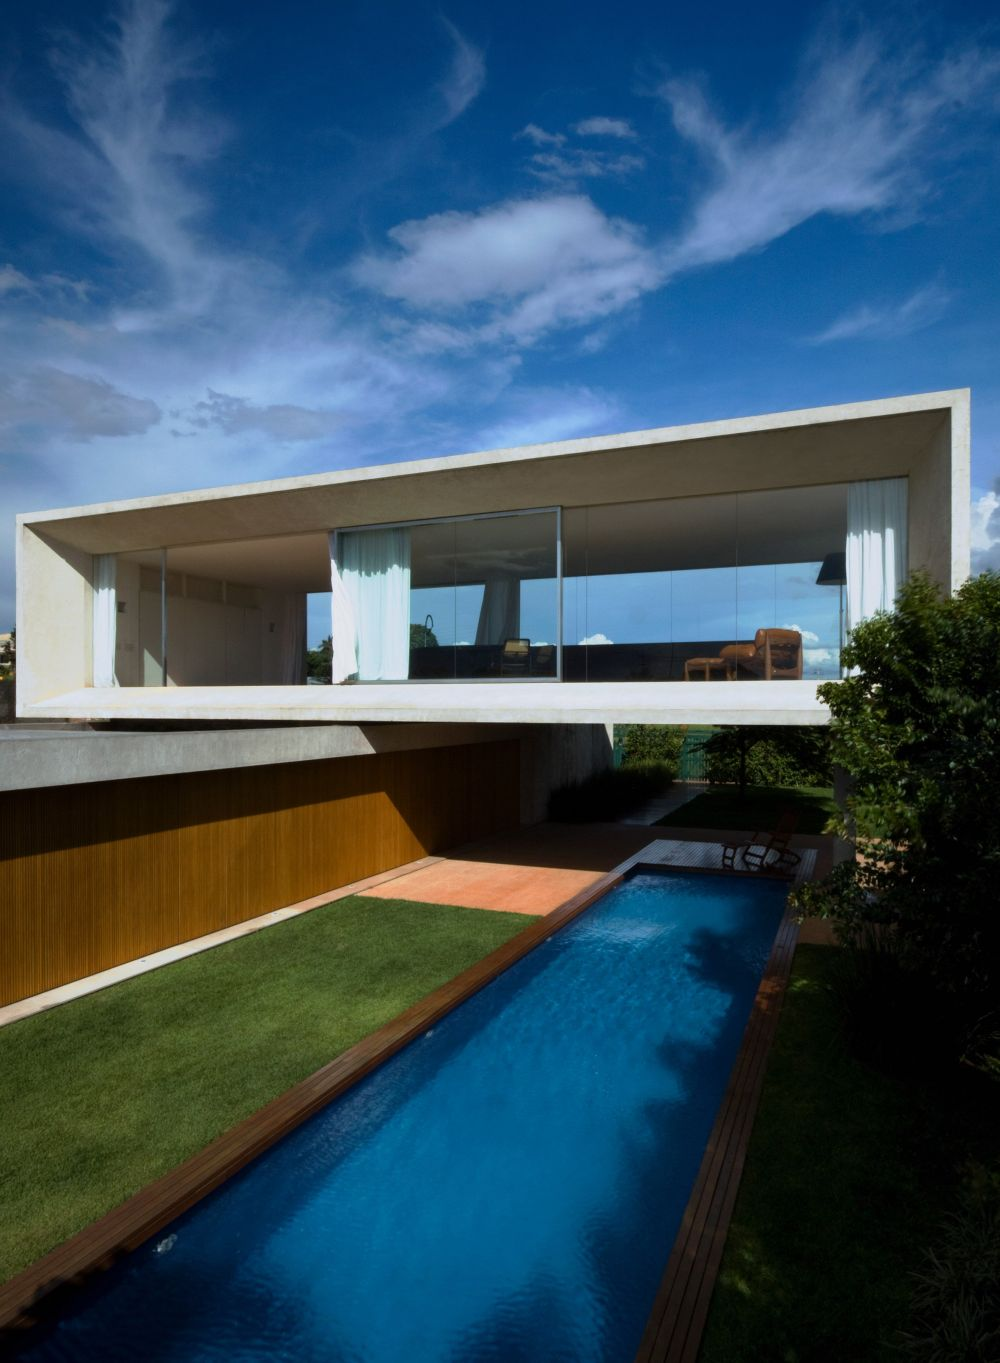 The top volume has glazed sides and hovers over a lap pool, being suspended on stilts